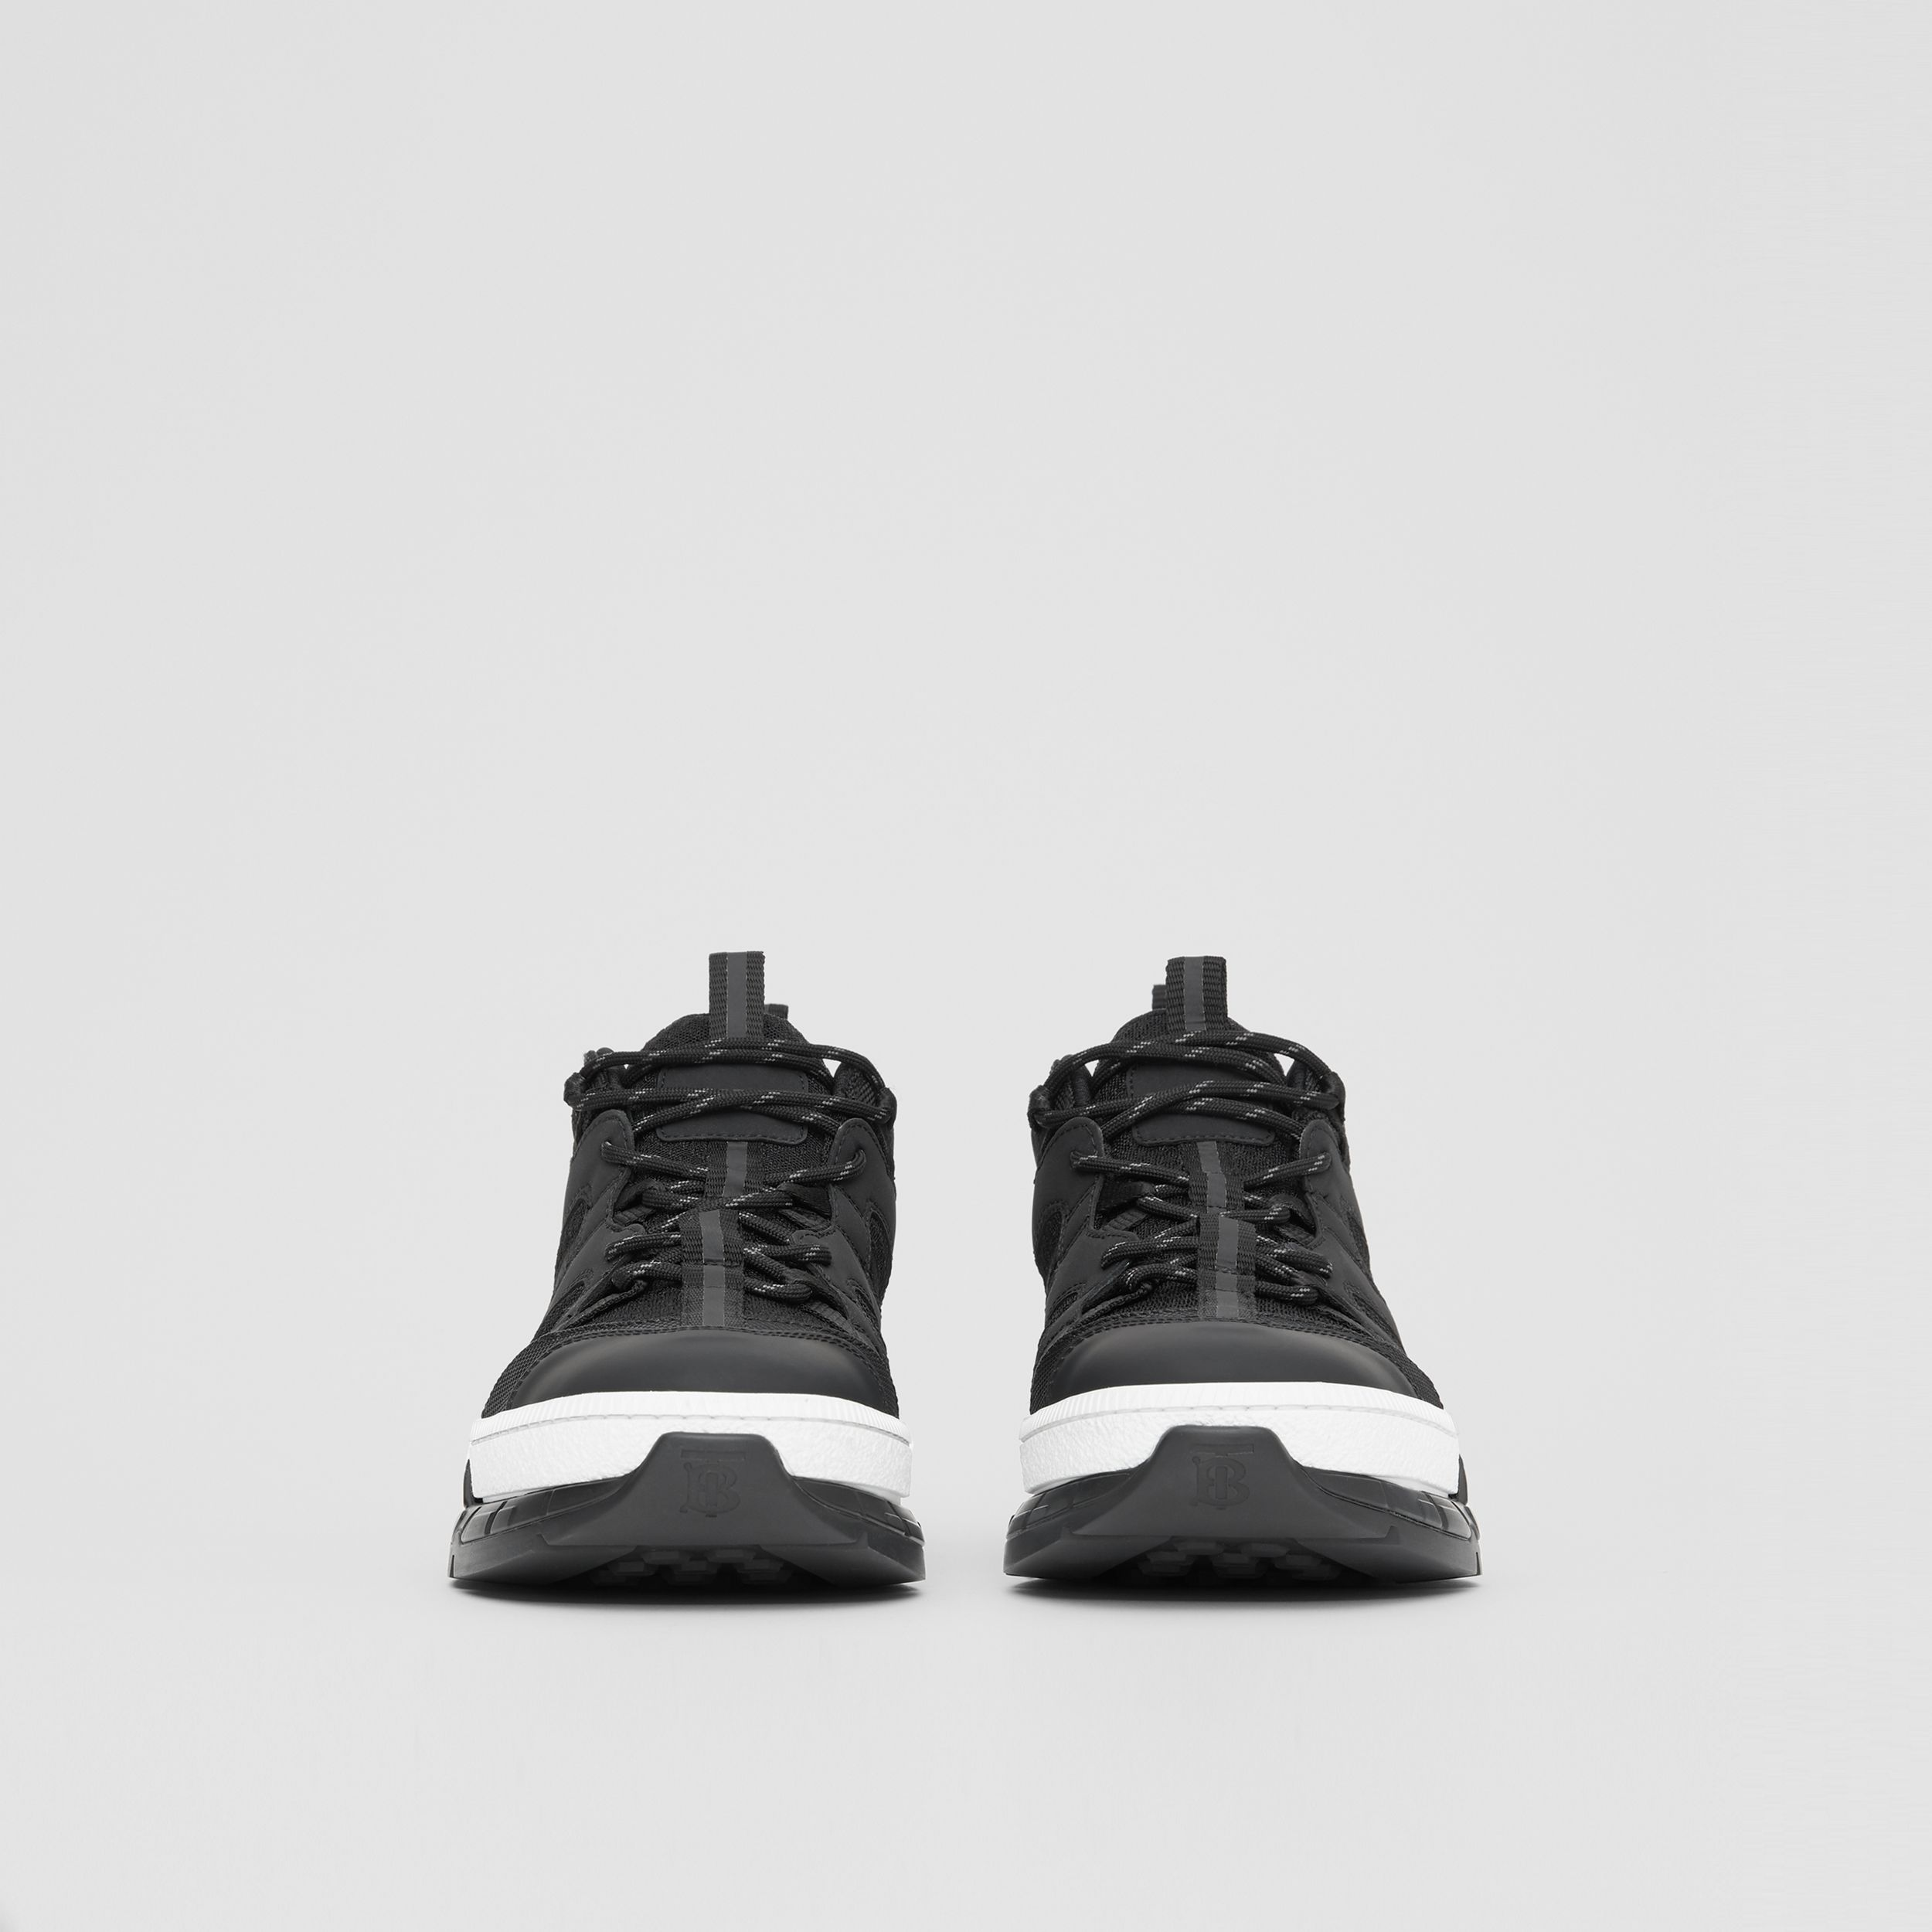 Mesh and Nubuck Union Sneakers in Black - Men | Burberry - 3